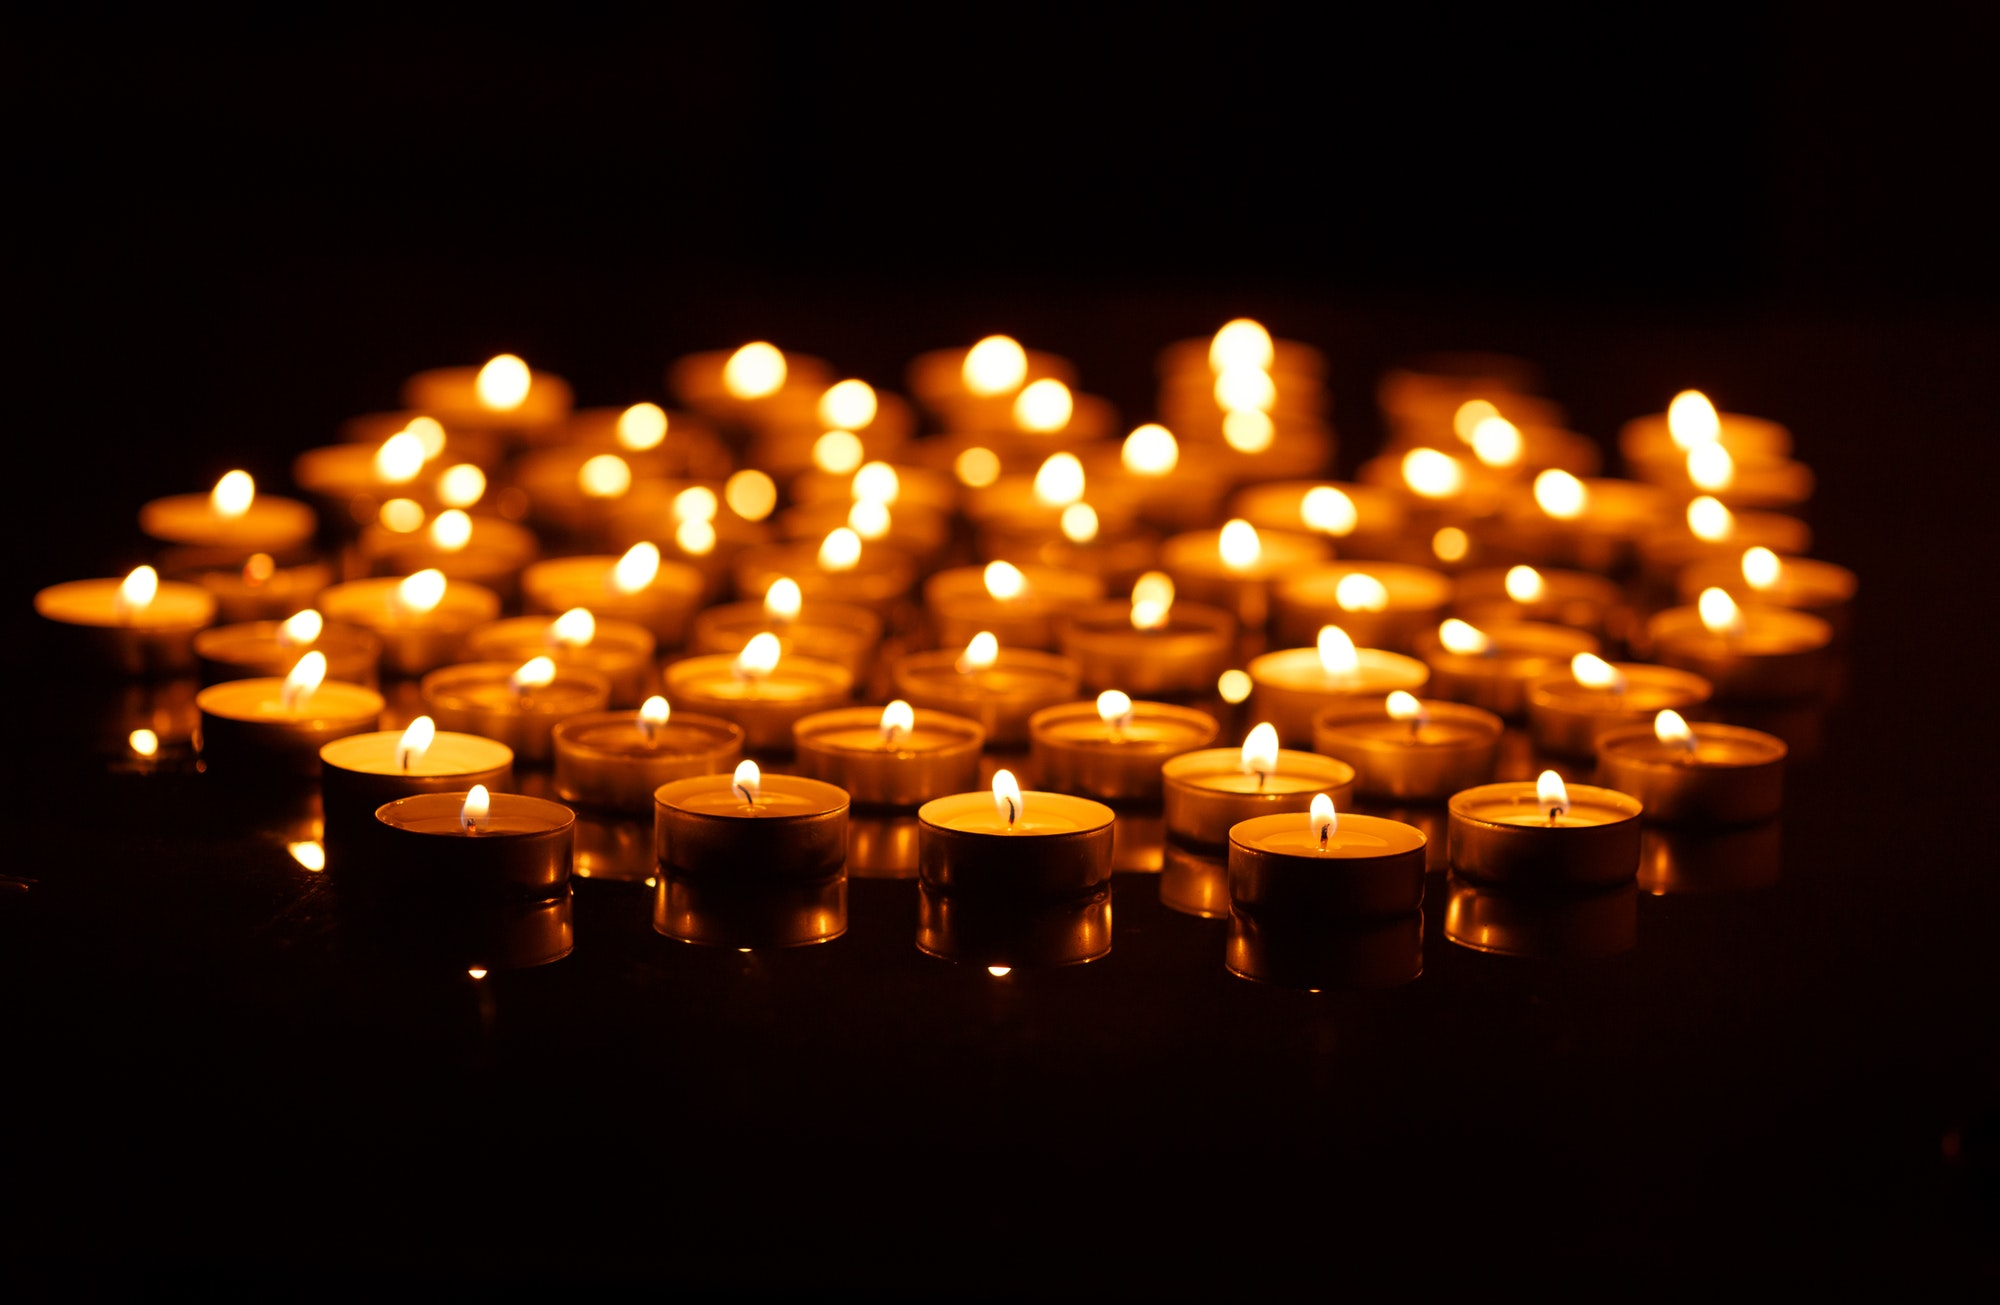 Candles burning in the night.